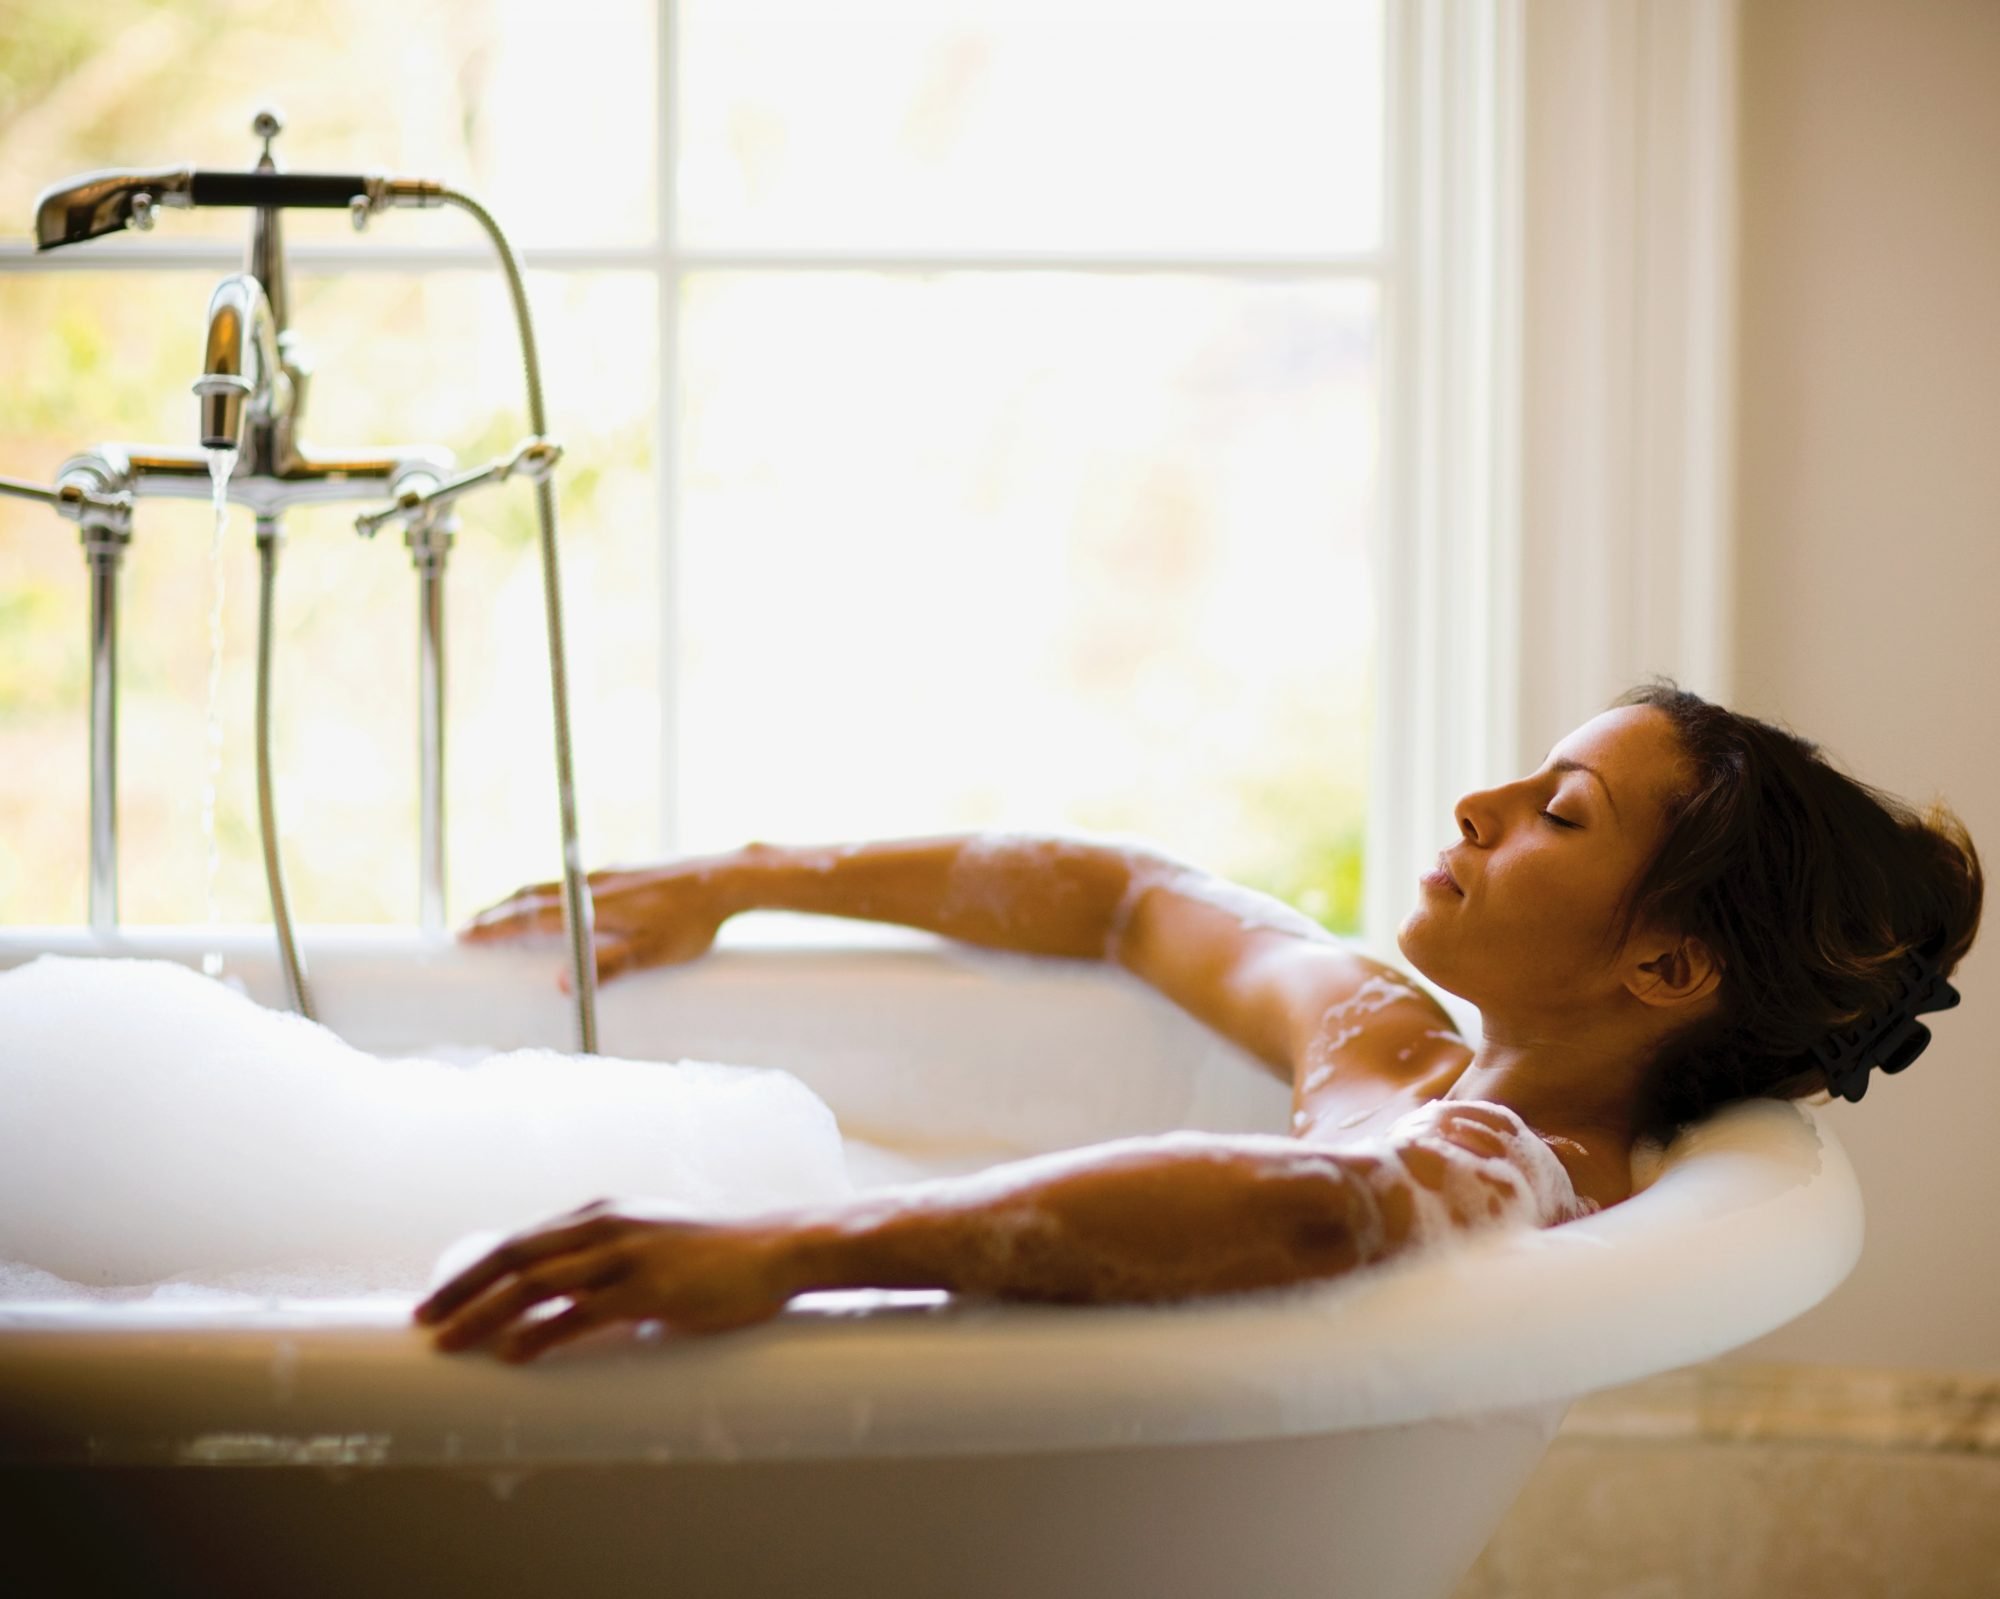 take a bath instead of scrolling through social media to relieve stress